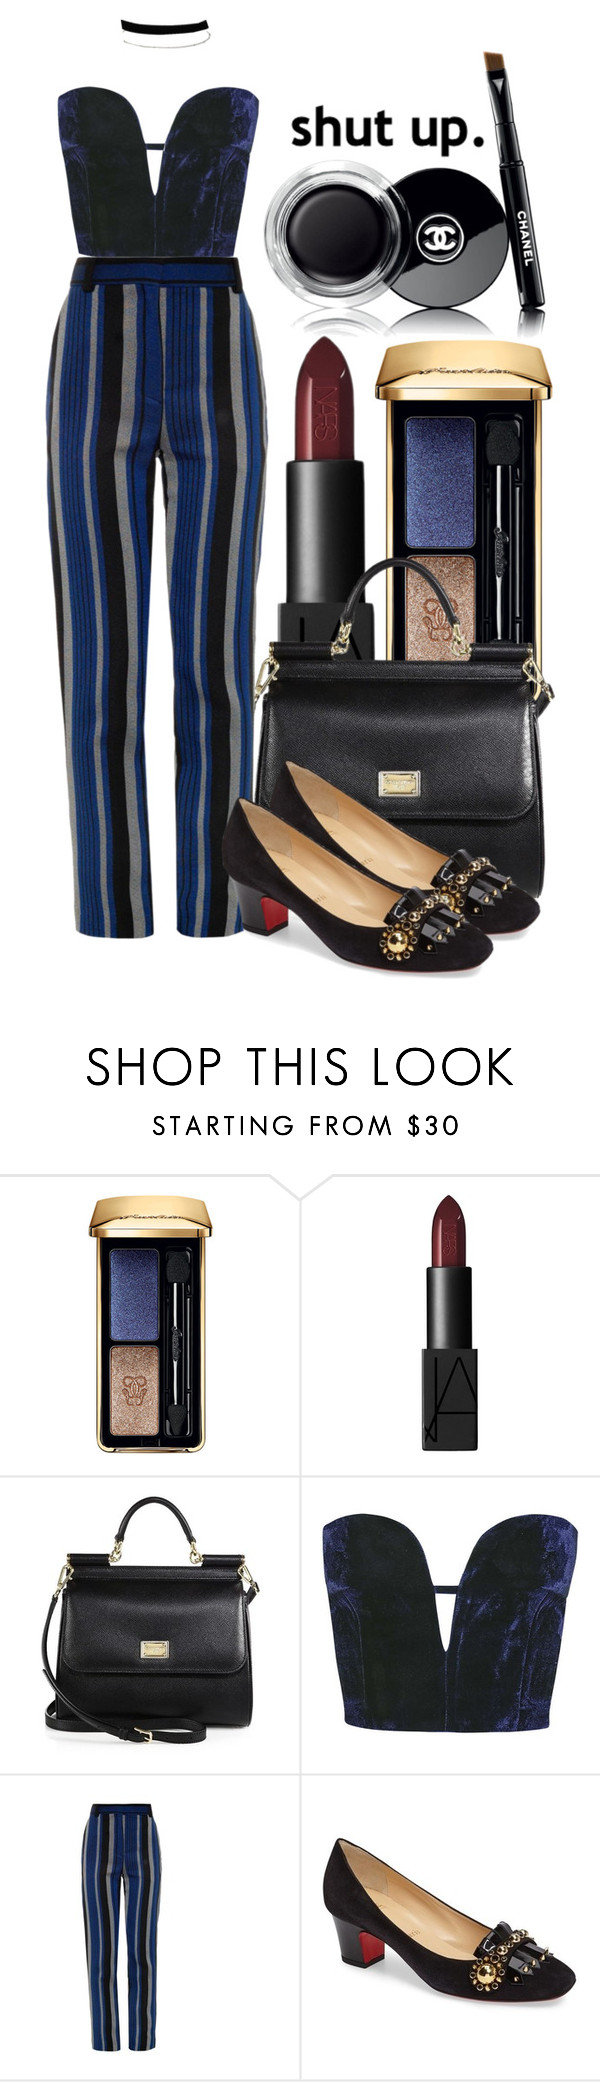 """Sin título #193"" by sheeriogirl ❤ liked on Polyvore featuring Guerlain, NARS Cosmetics, Dolce&Gabbana, Topshop, Proenza Schouler, Christian Louboutin, Miss Selfridge and Chanel"